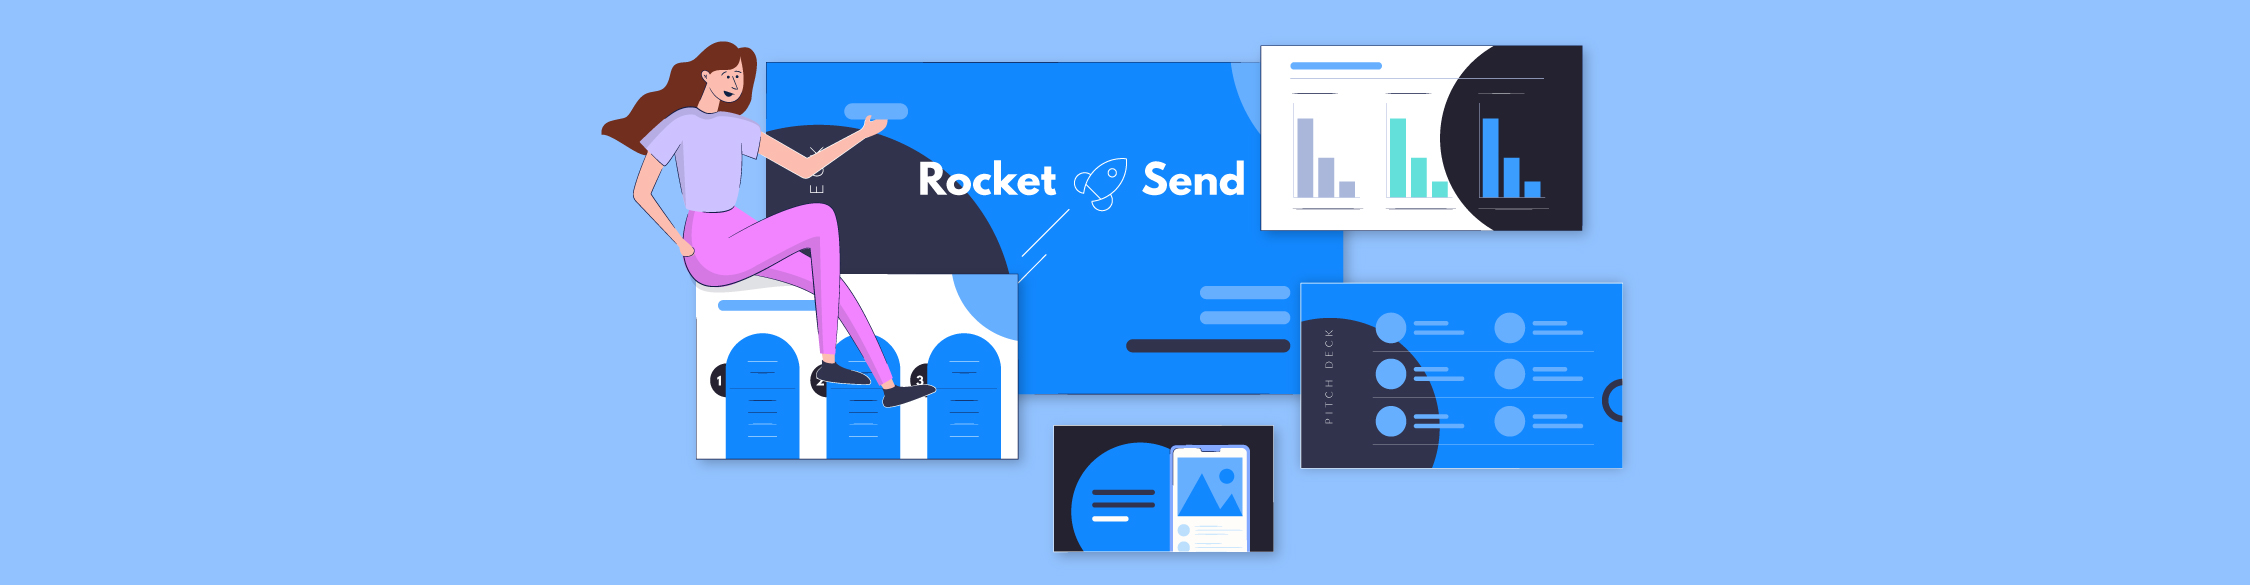 How to Create a Pitch Deck for Investors [Templates + Design Tips]